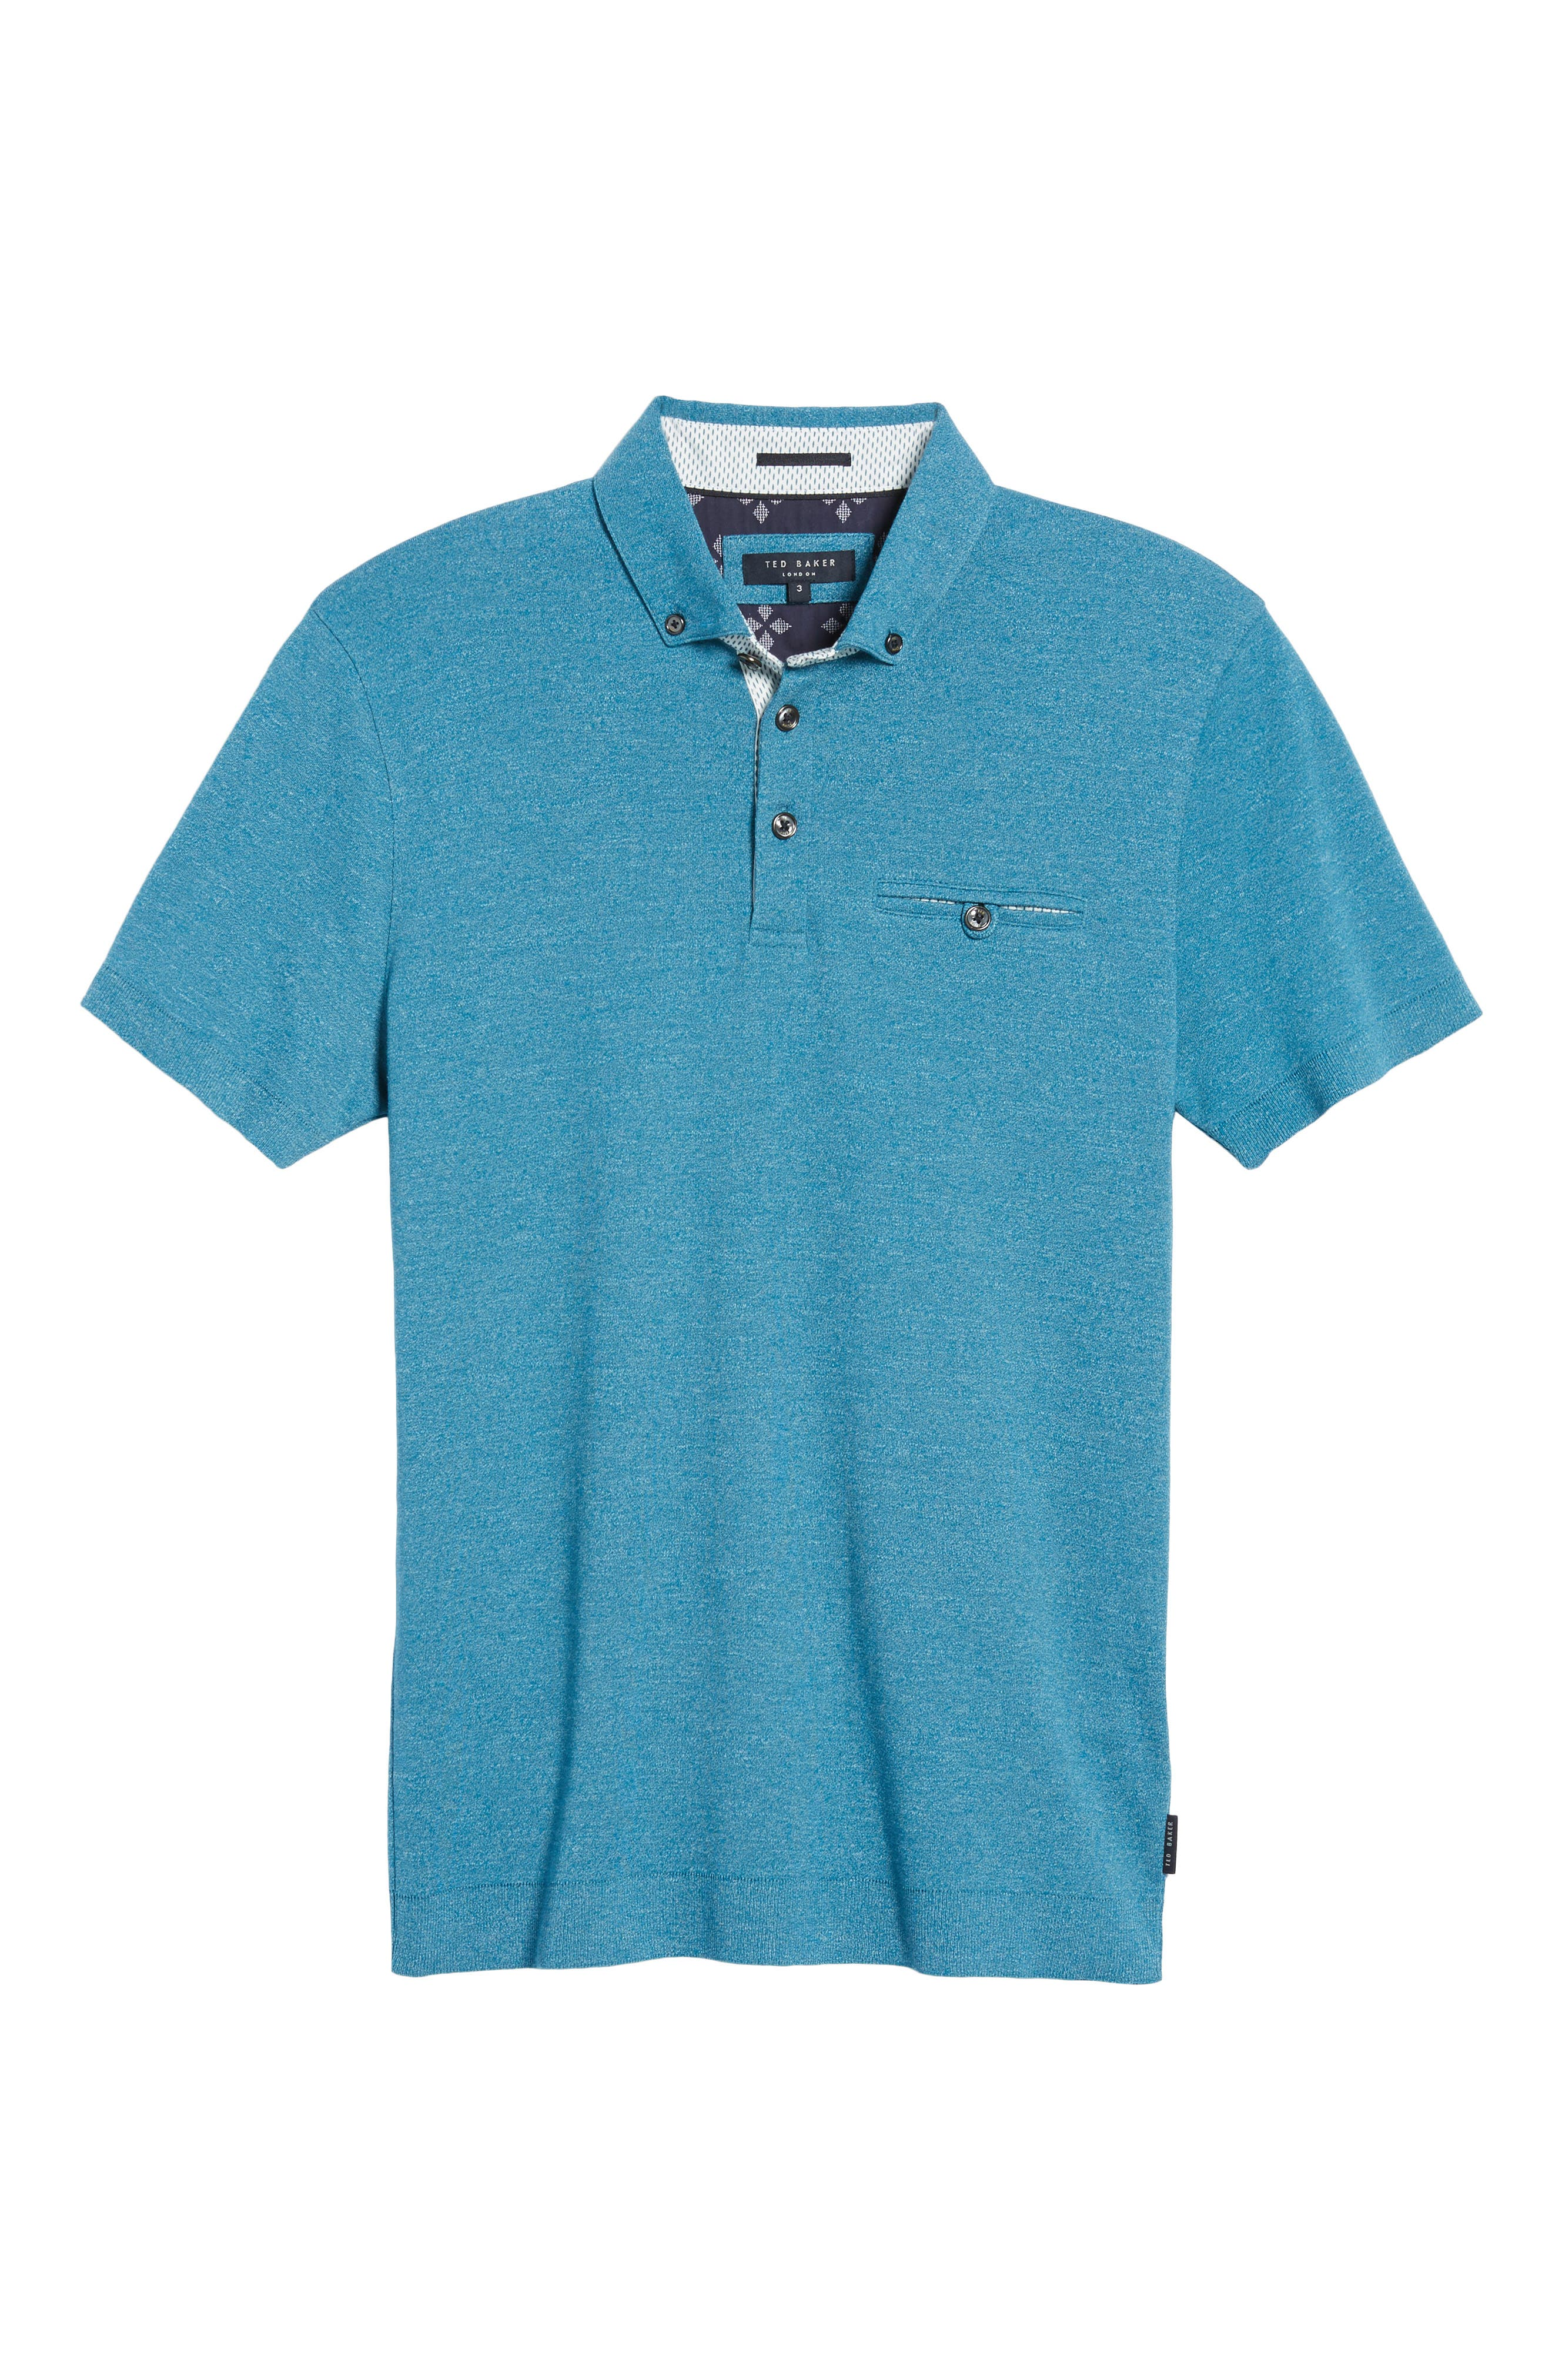 Frankiy Button Collar Polo,                             Alternate thumbnail 5, color,                             Teal